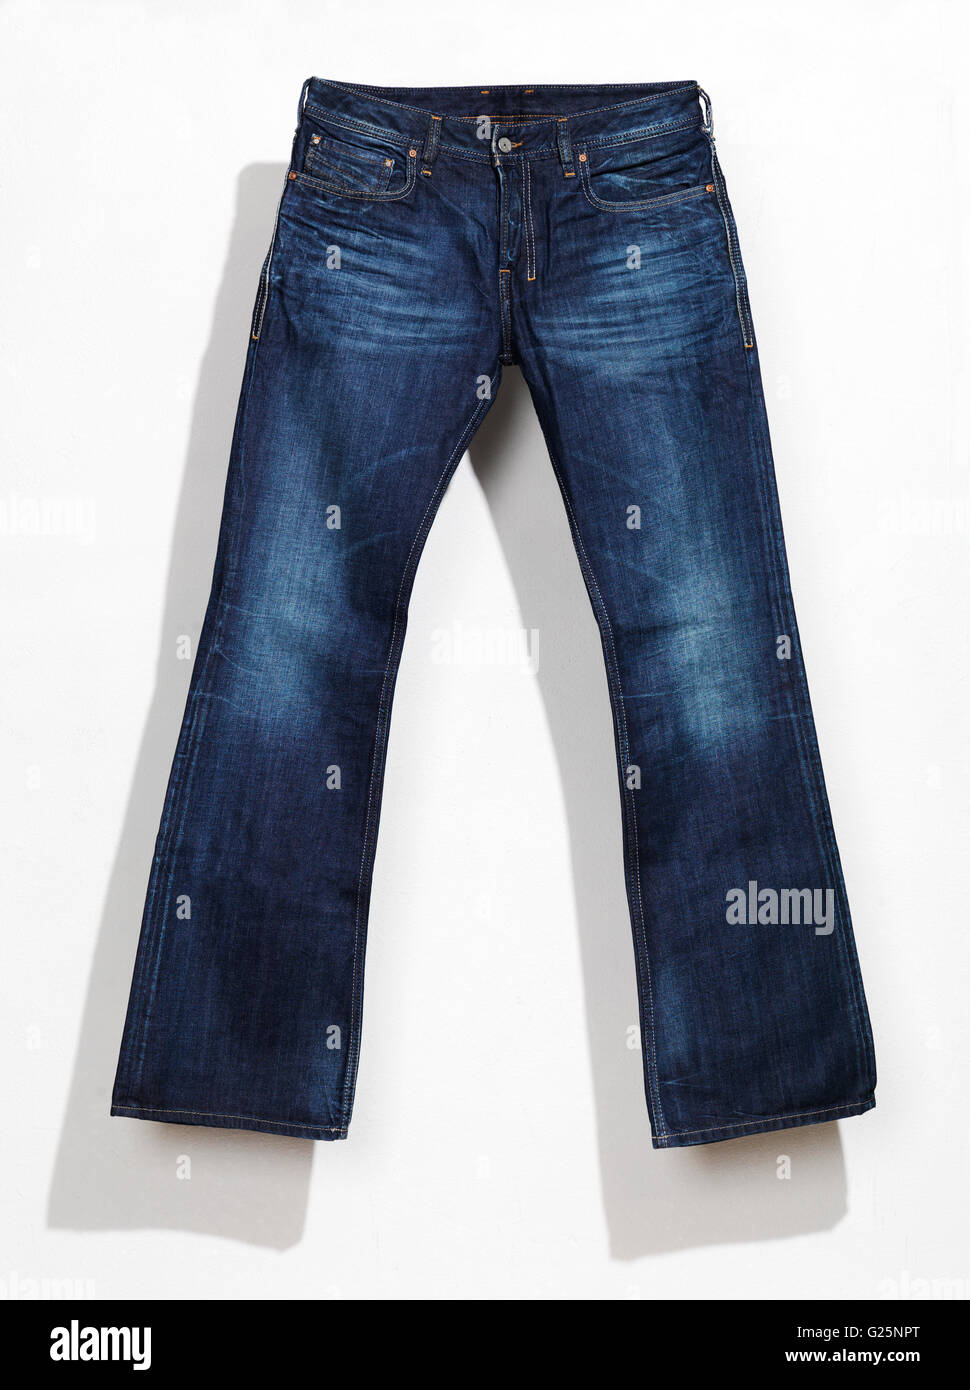 Blue jeans - Stock Image